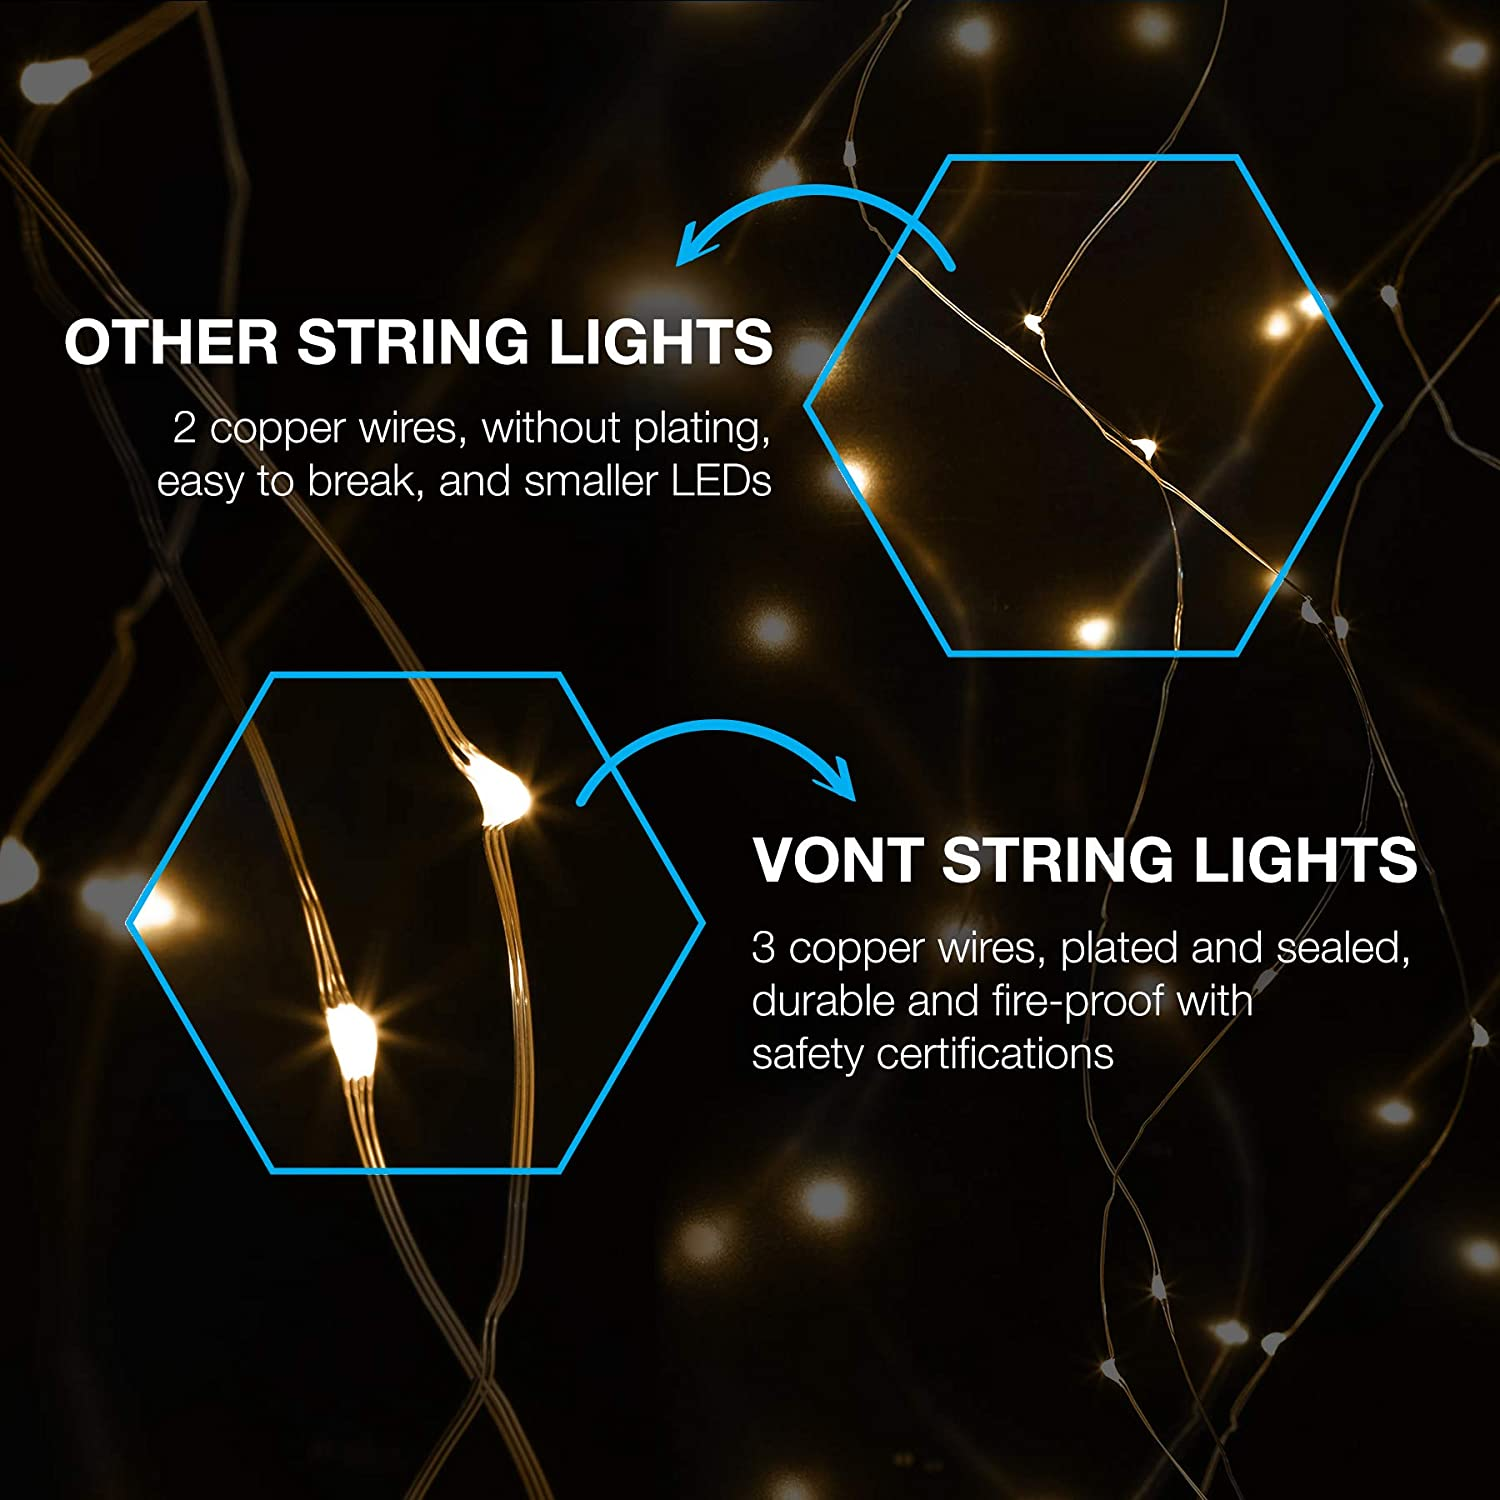 Vont Starry Fairy Lights, String Lights, 66FT, 200 LEDs, Bedroom Decor, Wall Decor, USB Powered, Bendable Copper Twinkle Lights, Indoor Outdoor Use, Lighting for Wall, Patio, Tapestry : Garden & Outdoor